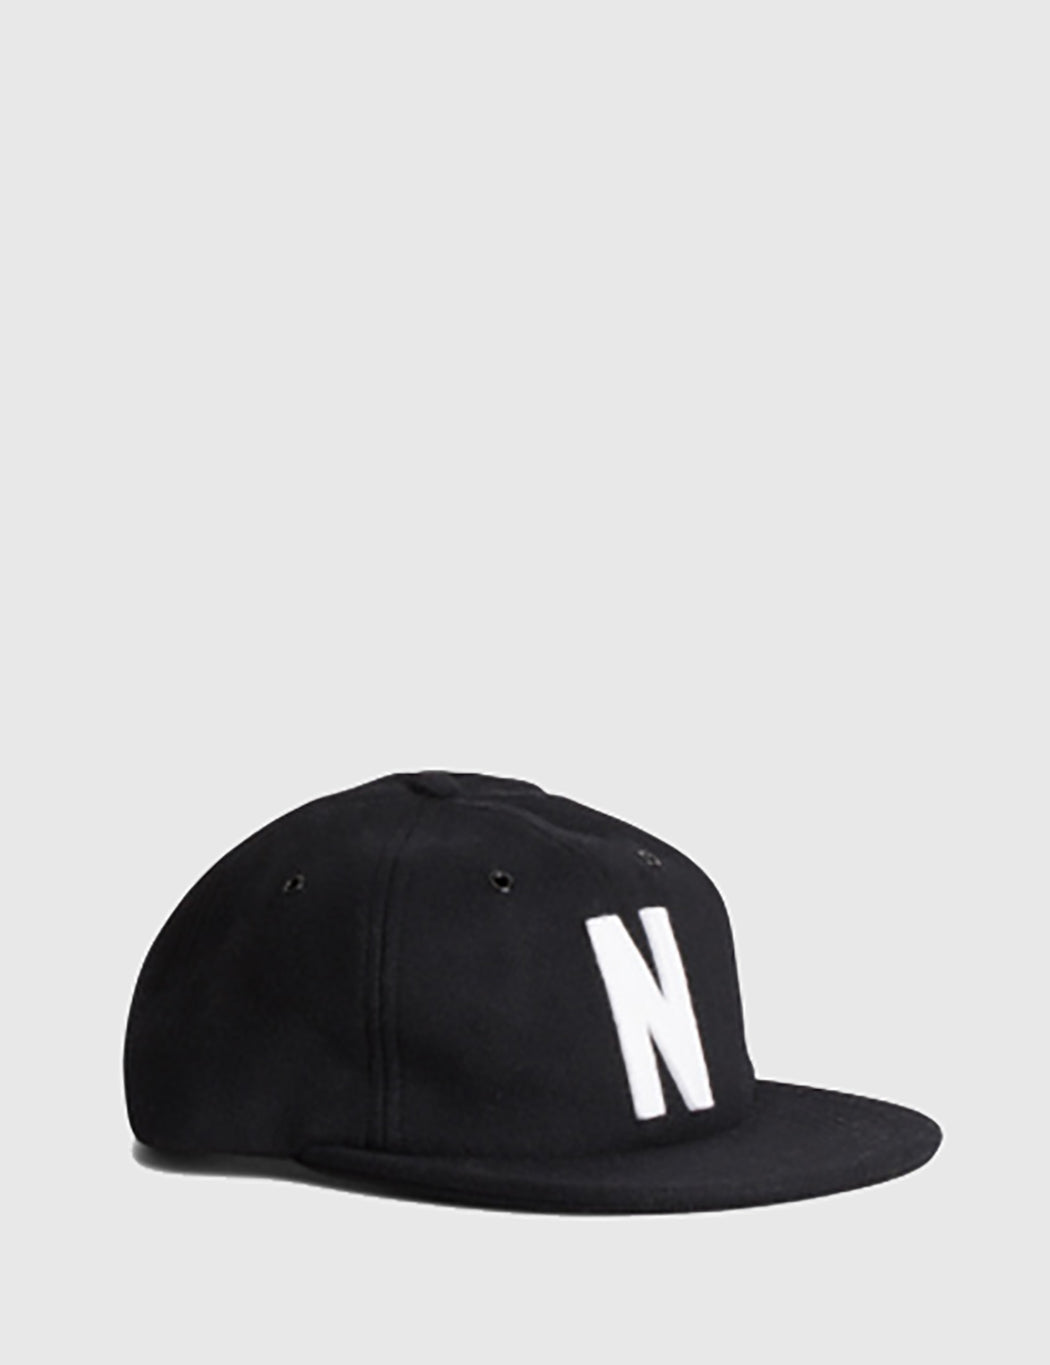 804e3f3a15 Norse Projects Norse Wool Cap - Black | URBAN EXCESS.